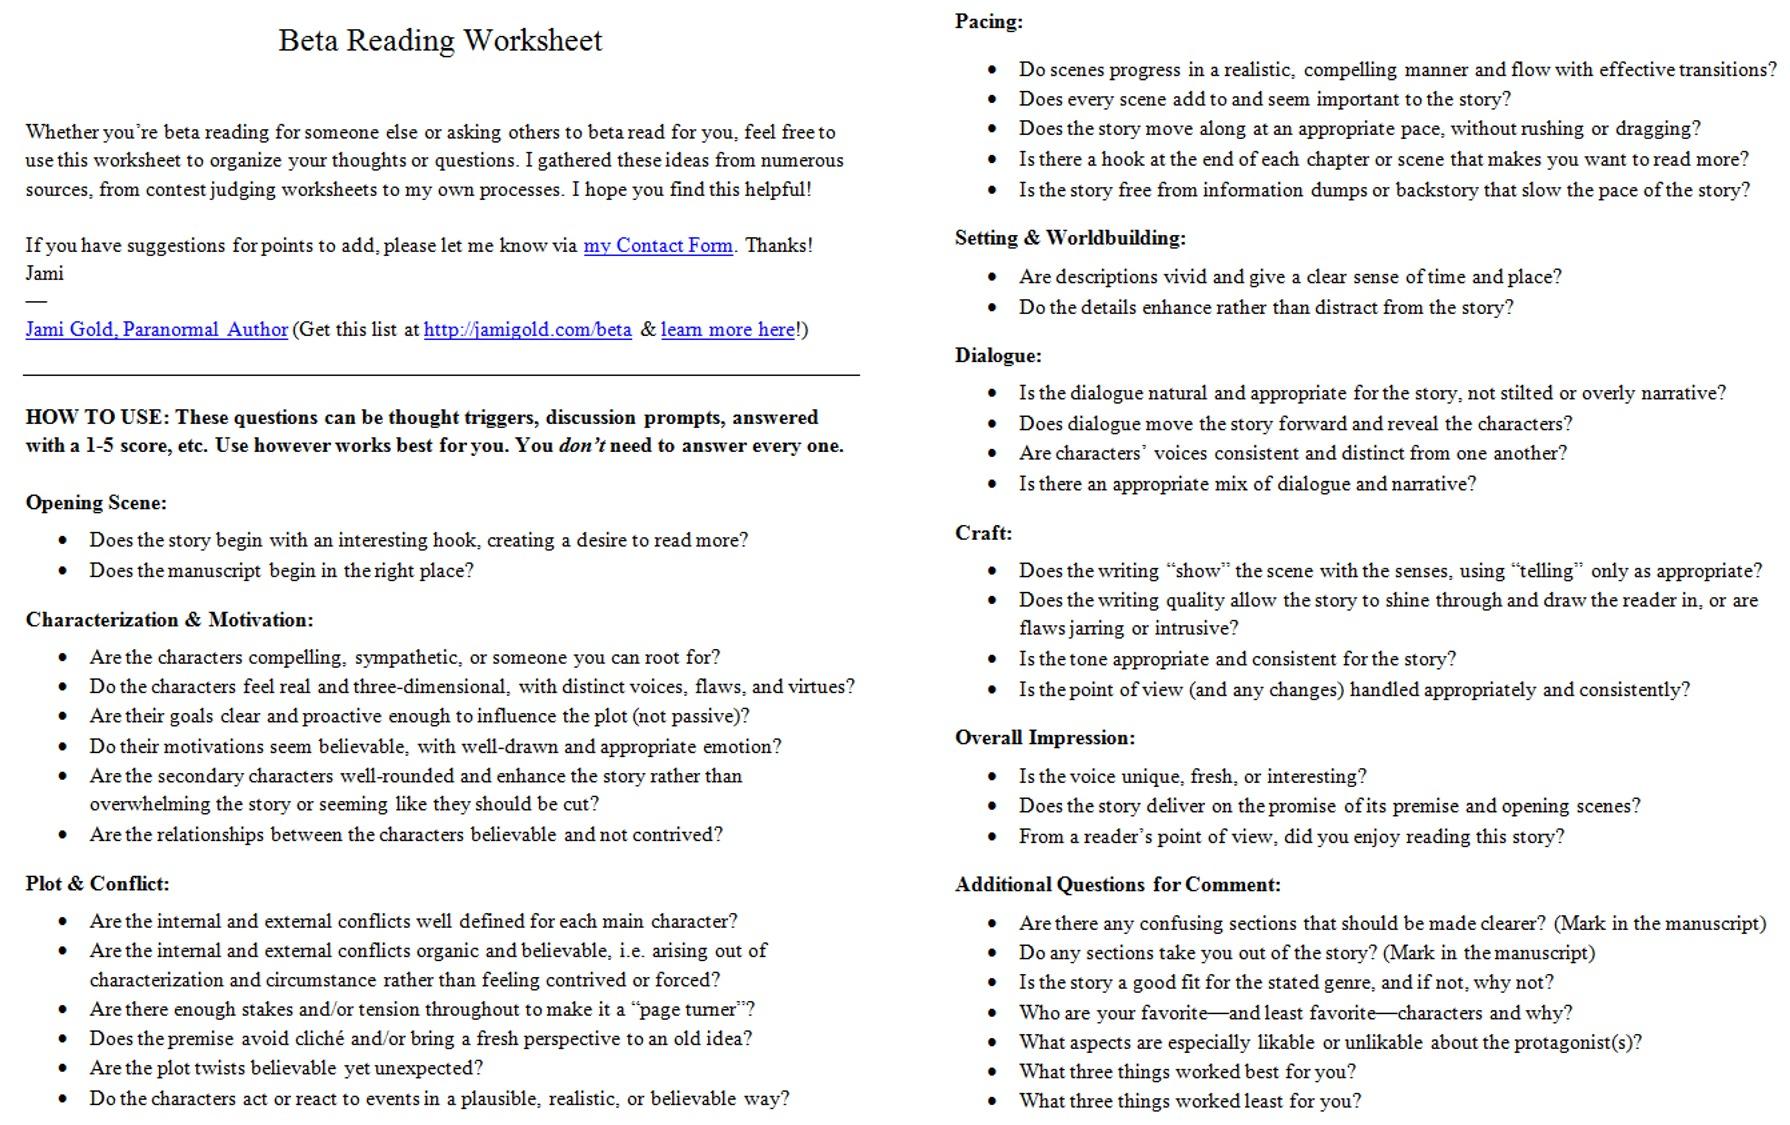 Weirdmailus  Terrific Worksheets For Writers  Jami Gold Paranormal Author With Remarkable Screen Shot Of The Twopage Beta Reading Worksheet With Charming Worksheet For Class  Also Provinces Of Canada Worksheet In Addition D Shapes Worksheets Grade  And Nd Standard Maths Worksheet As Well As Free Printable Math Worksheets For Grade  Additionally Fraction Equivalents Worksheet From Jamigoldcom With Weirdmailus  Remarkable Worksheets For Writers  Jami Gold Paranormal Author With Charming Screen Shot Of The Twopage Beta Reading Worksheet And Terrific Worksheet For Class  Also Provinces Of Canada Worksheet In Addition D Shapes Worksheets Grade  From Jamigoldcom